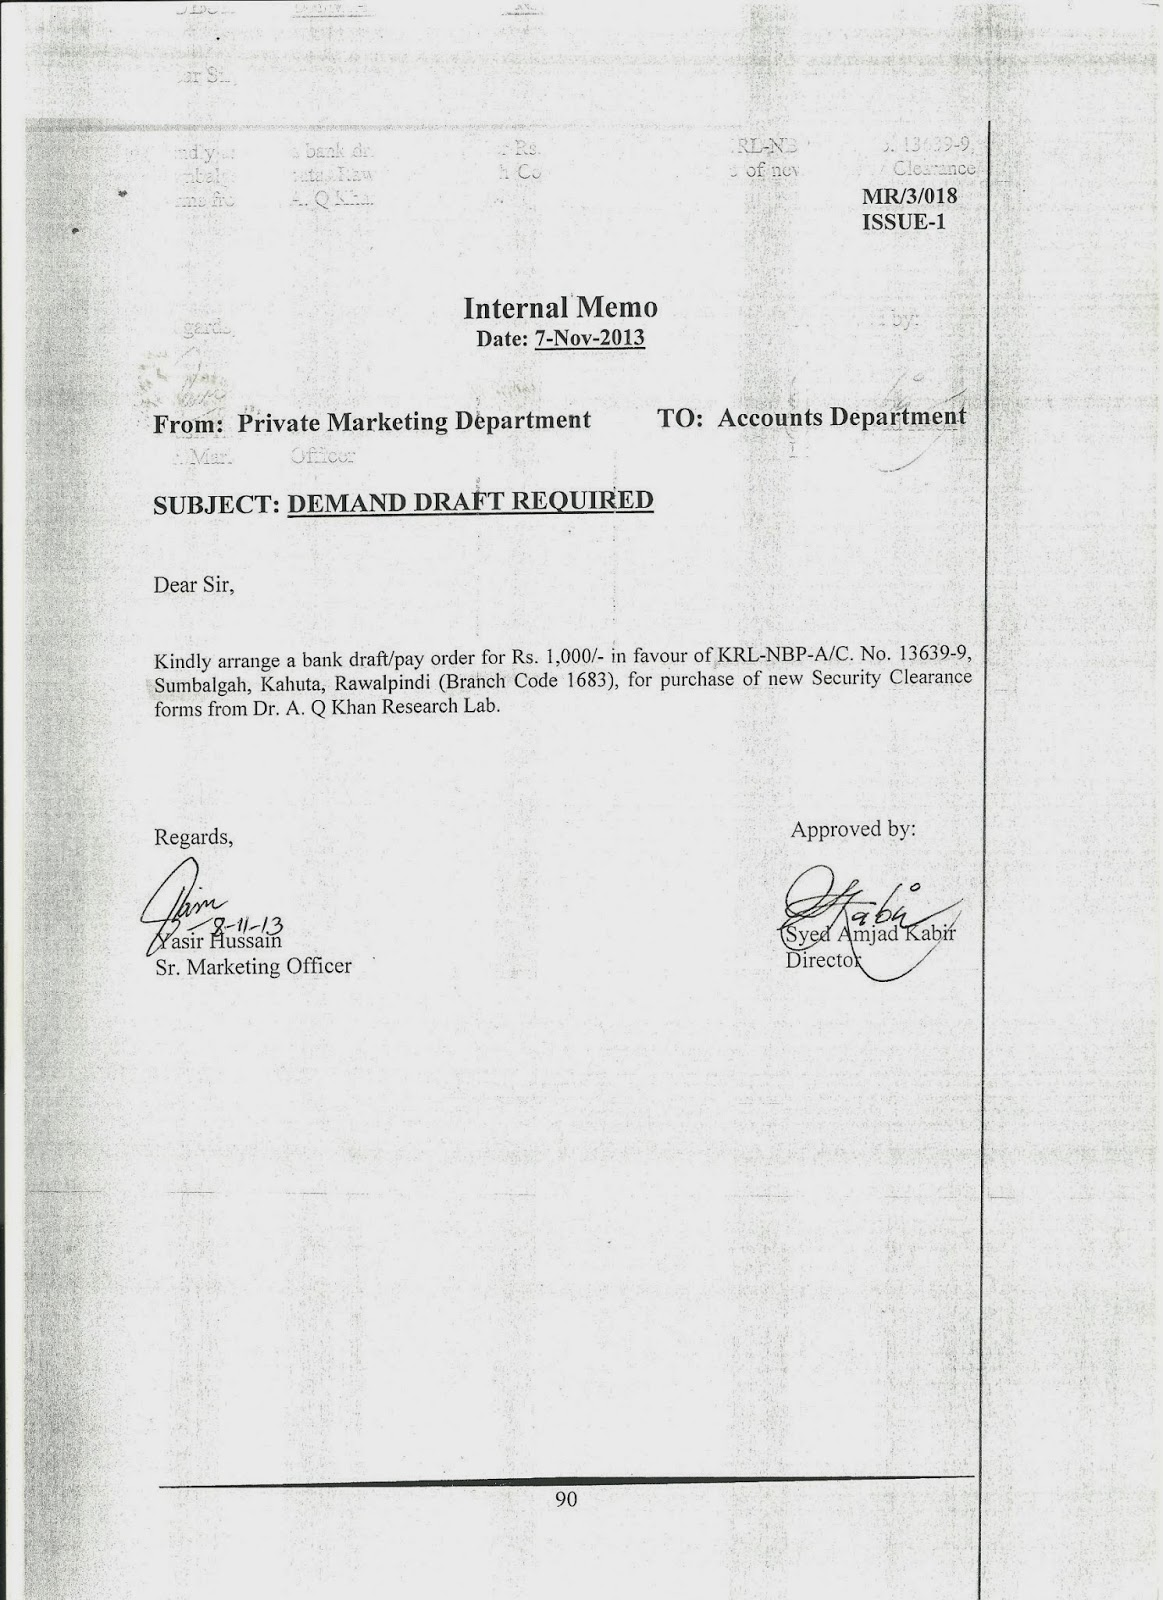 Internal Memo Format Letter | DocumentsHub.Com